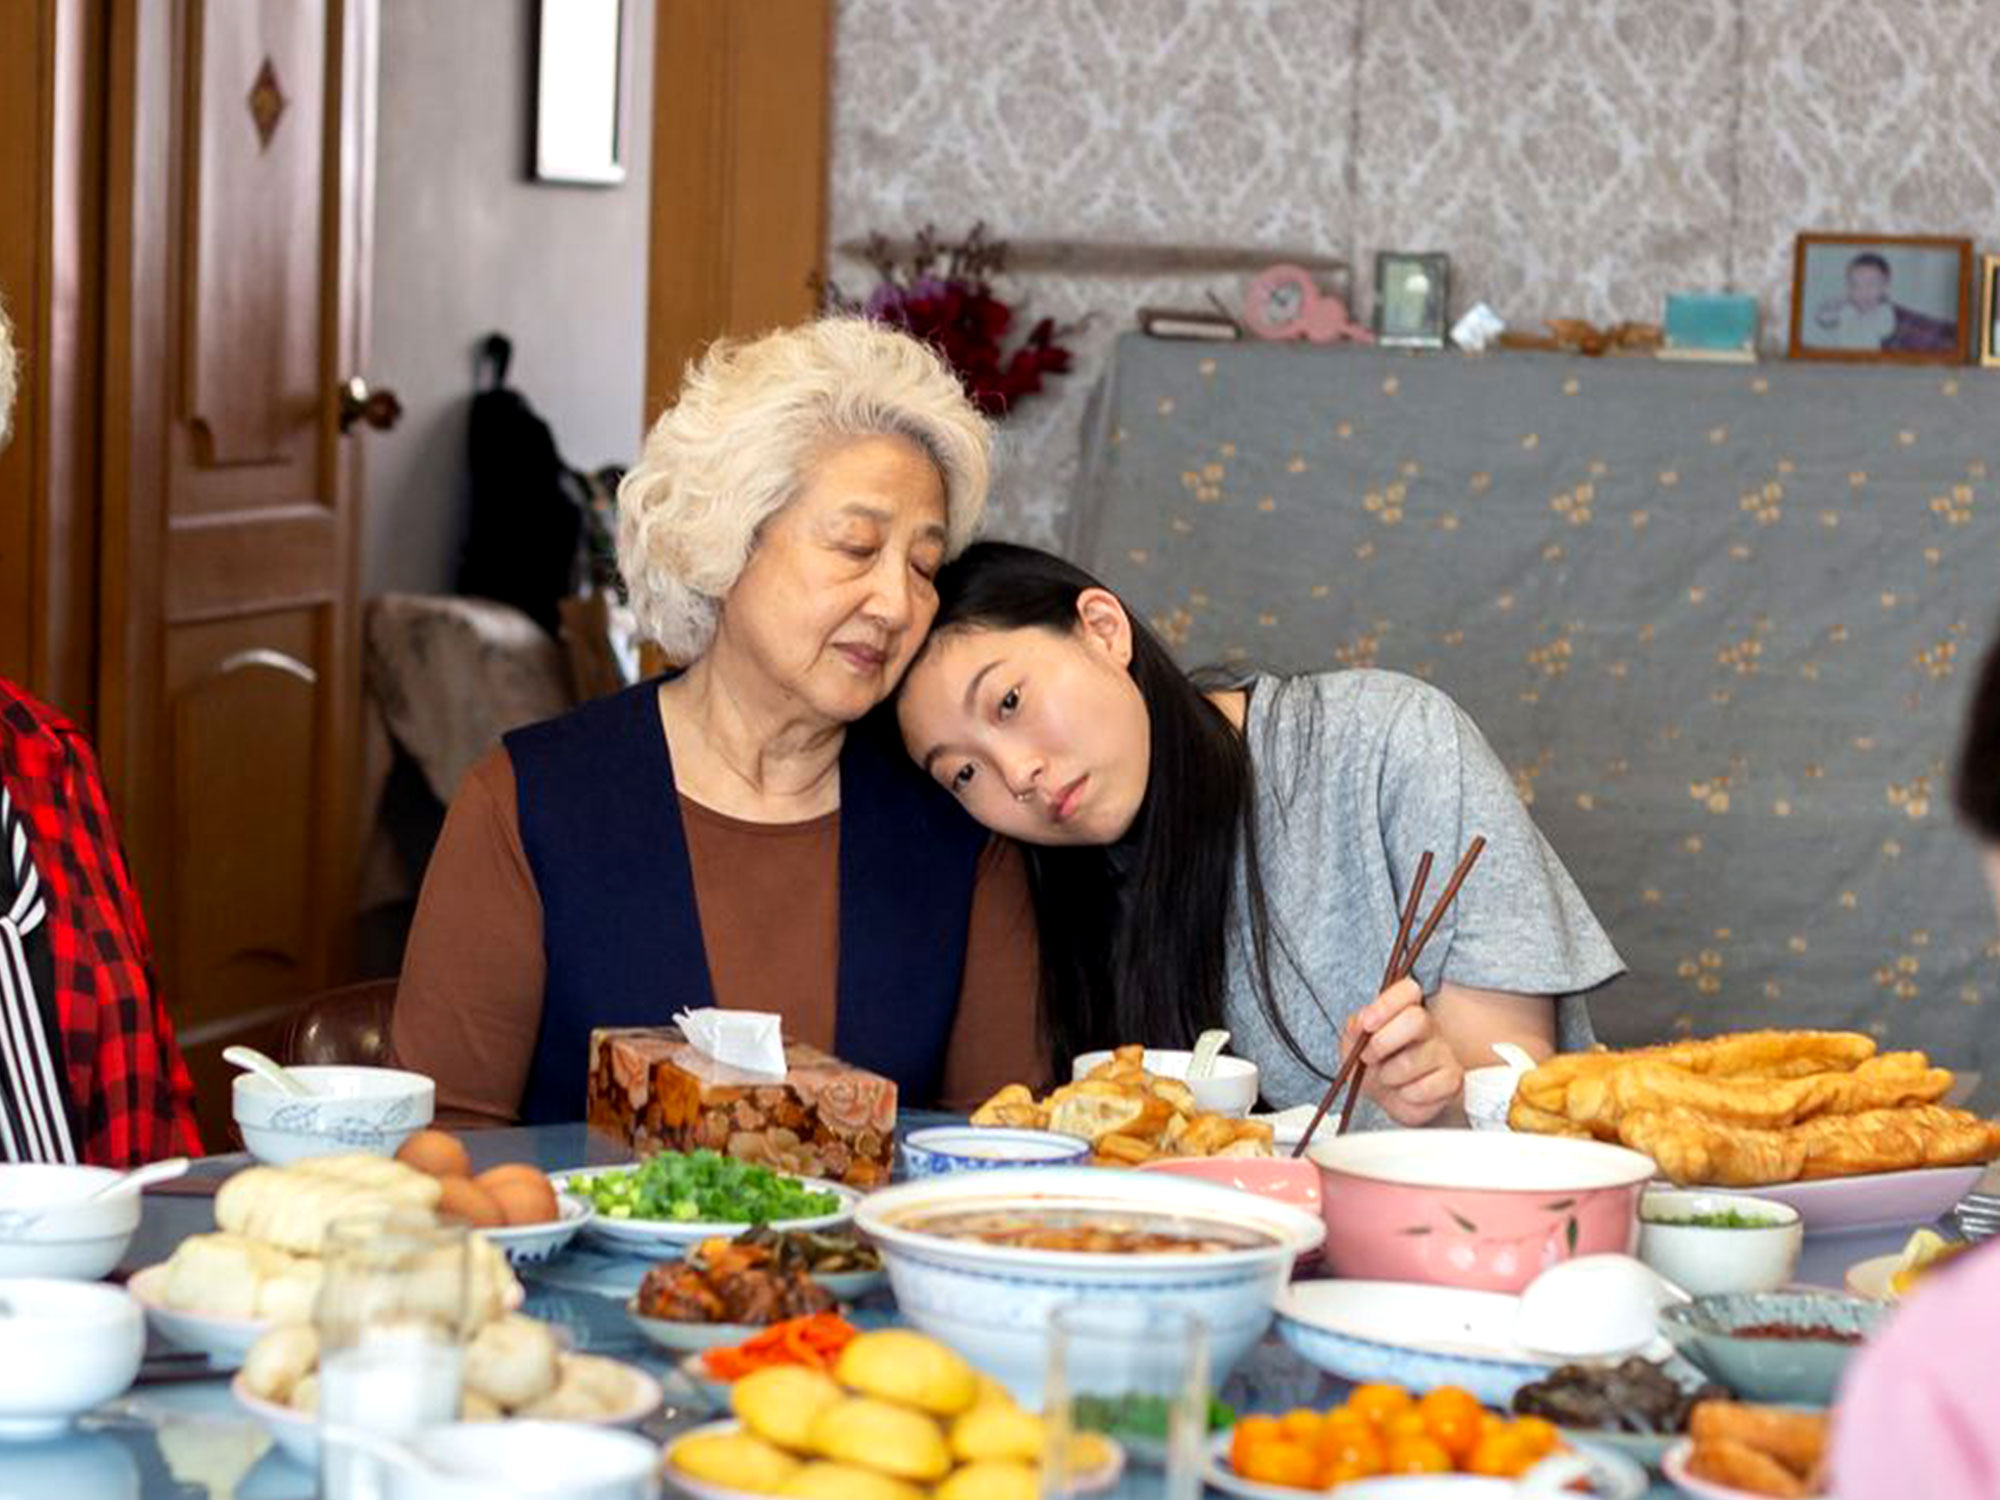 The Farewell review – A beautifully rendered tragicomedy